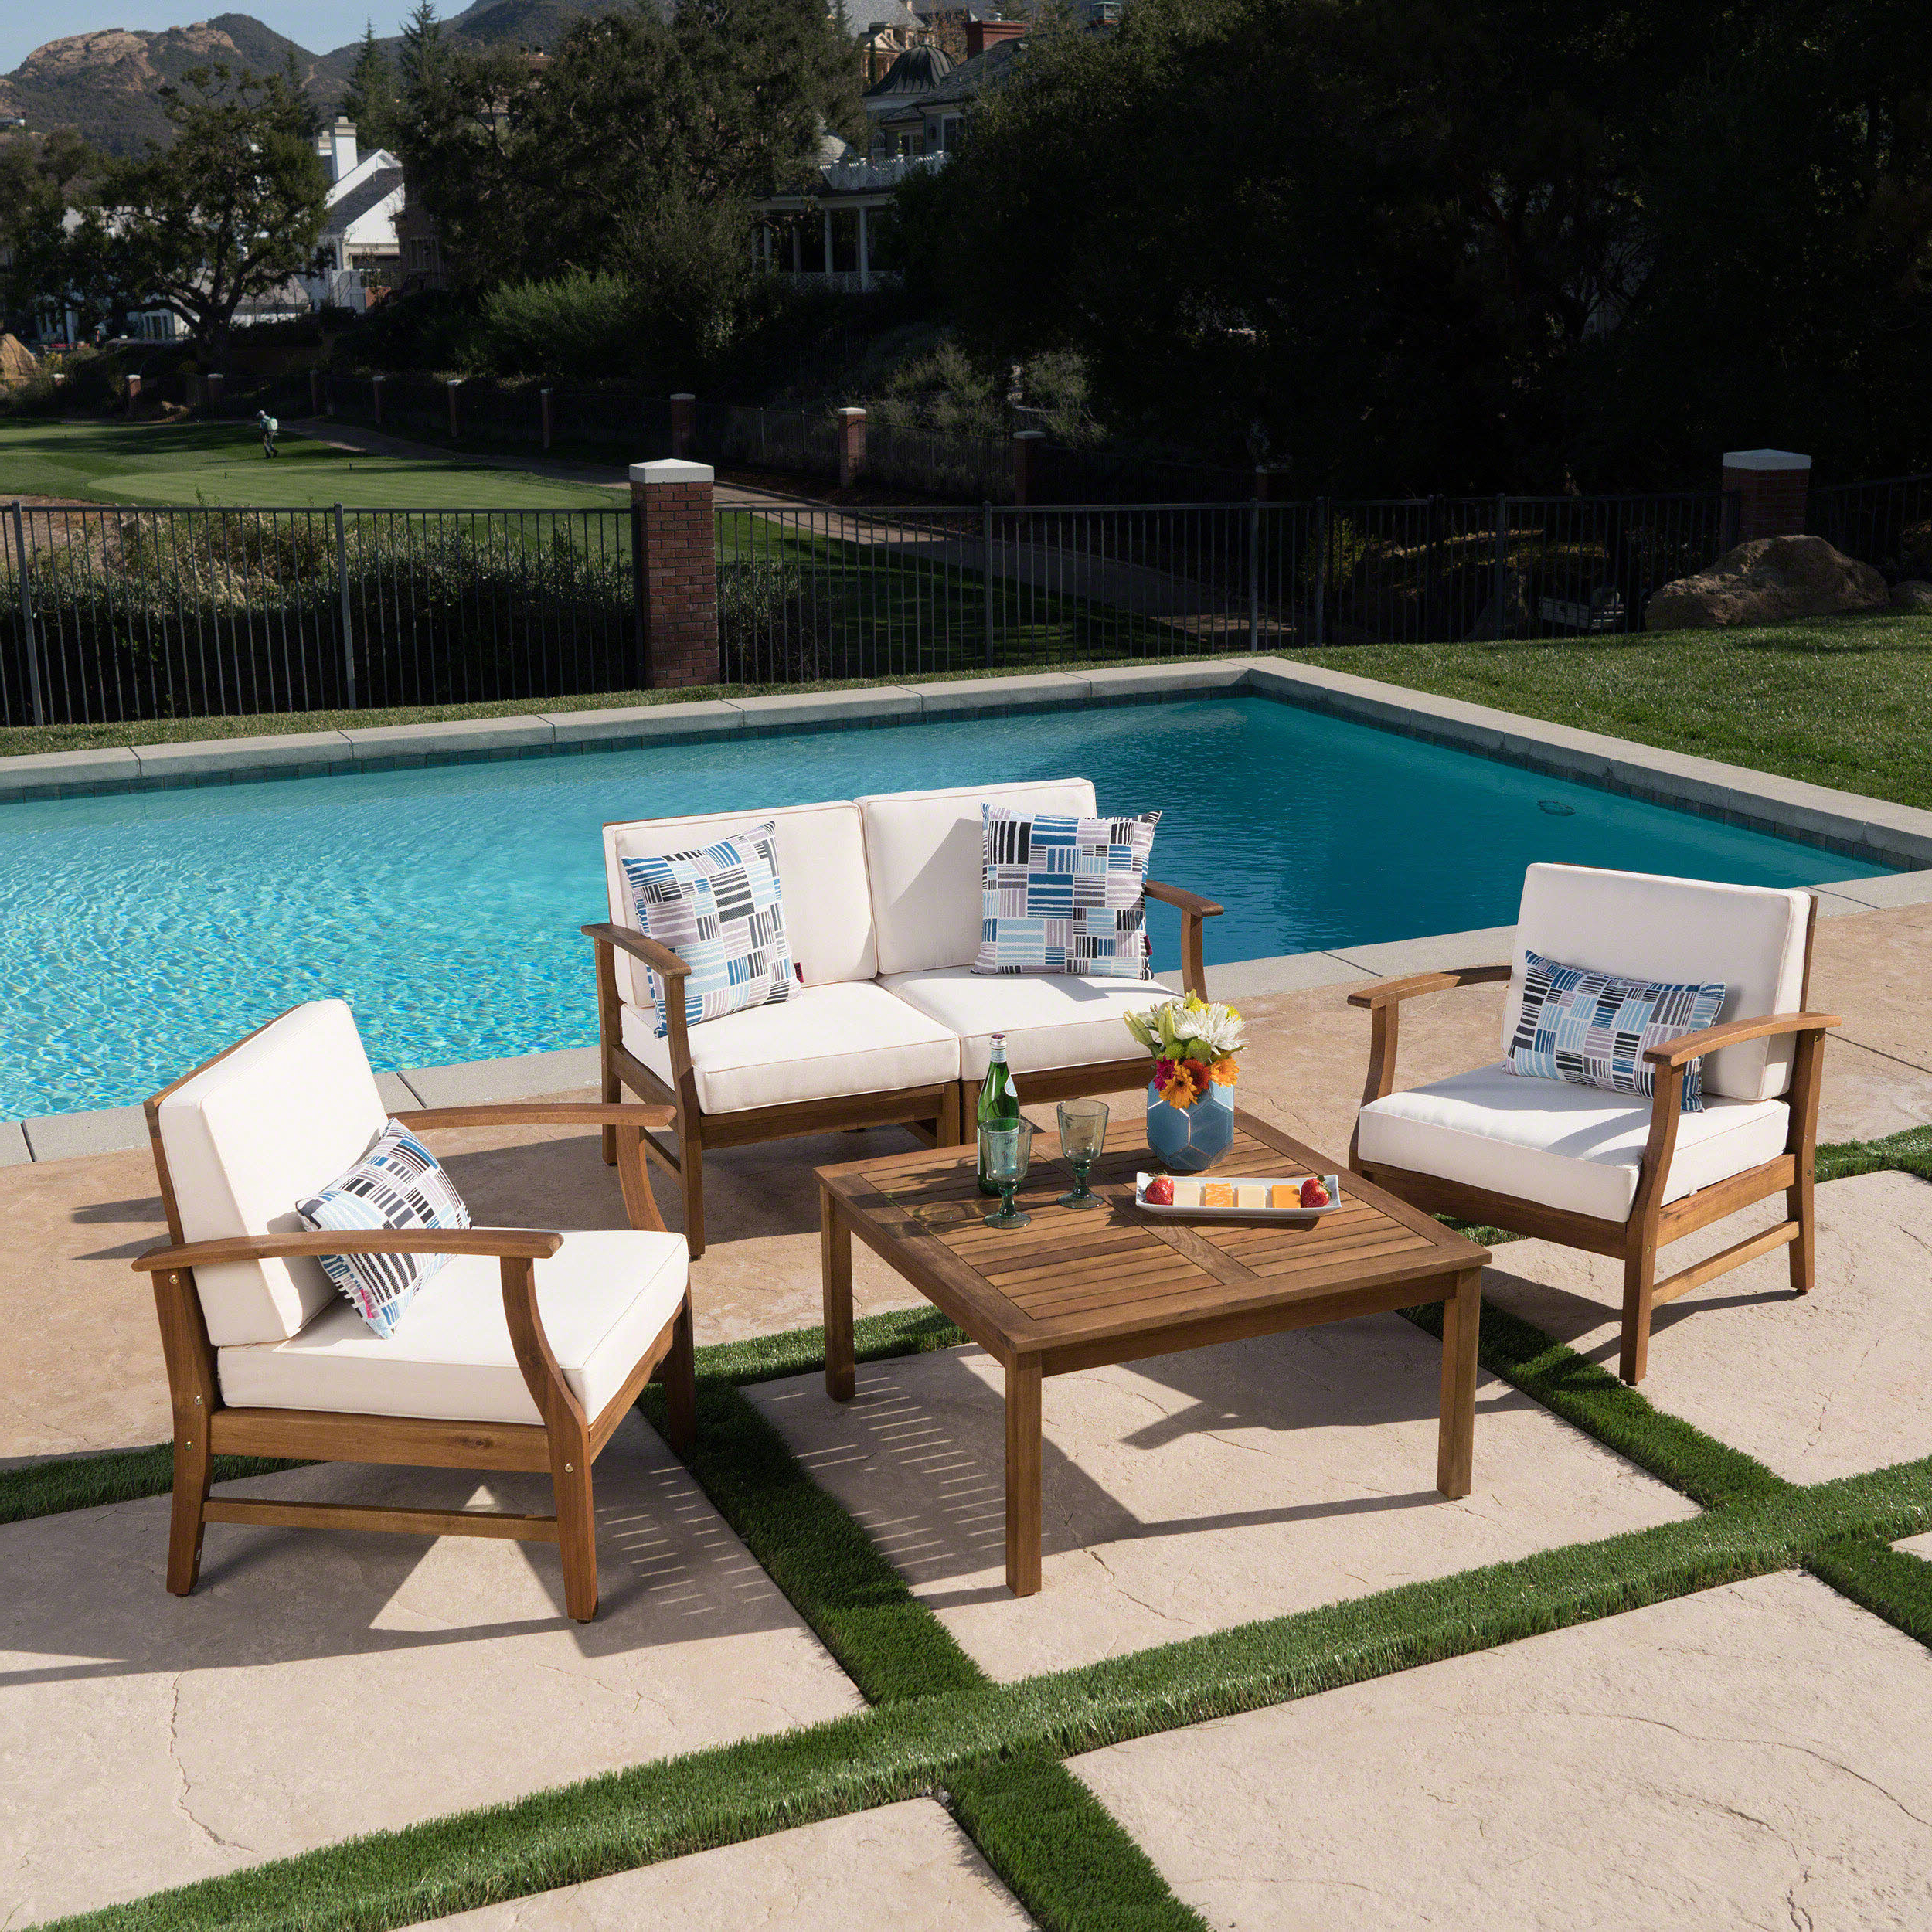 Trendy Antonia Teak Patio Sectionals With Cushions Pertaining To Antonia 4 Piece Sofa Set With Cushions (View 22 of 25)